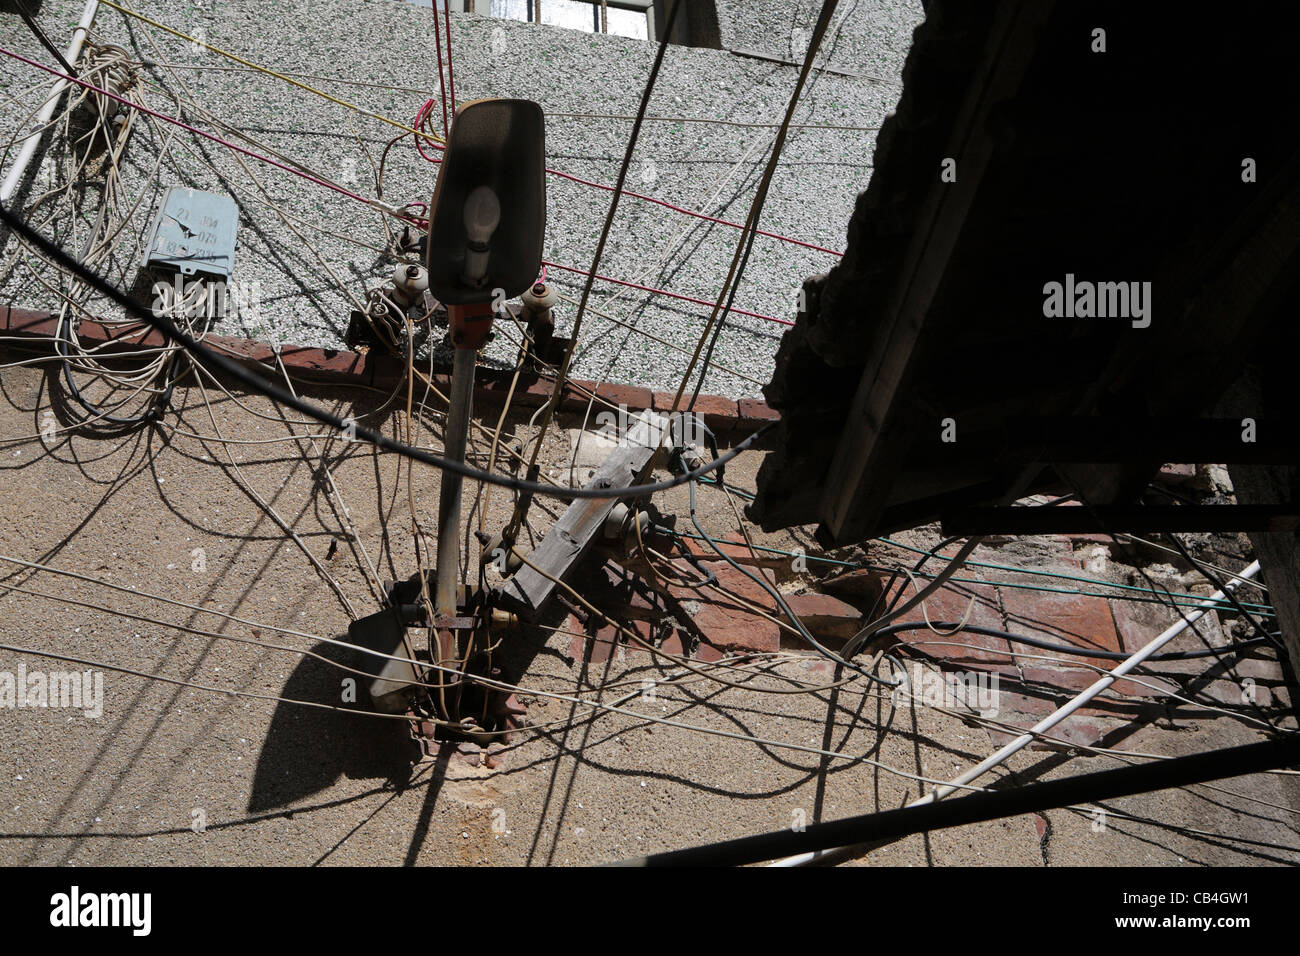 chaotic messy unsafe dangerous electrical wiring exterior old stock rh alamy com Electrical Wiring for Rodent Poison reporting dangerous electrical wiring